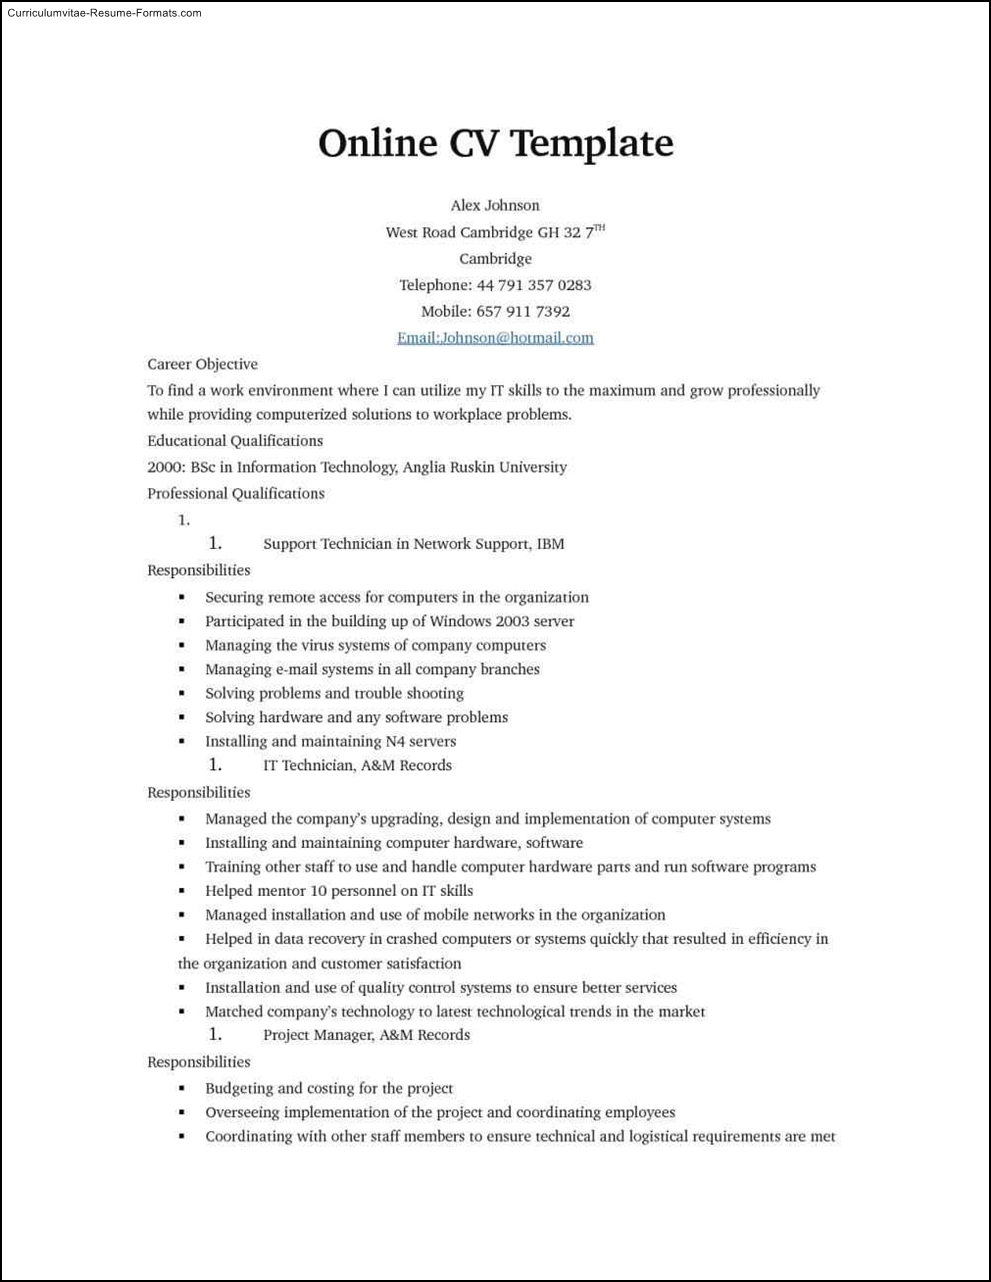 free online resume templates